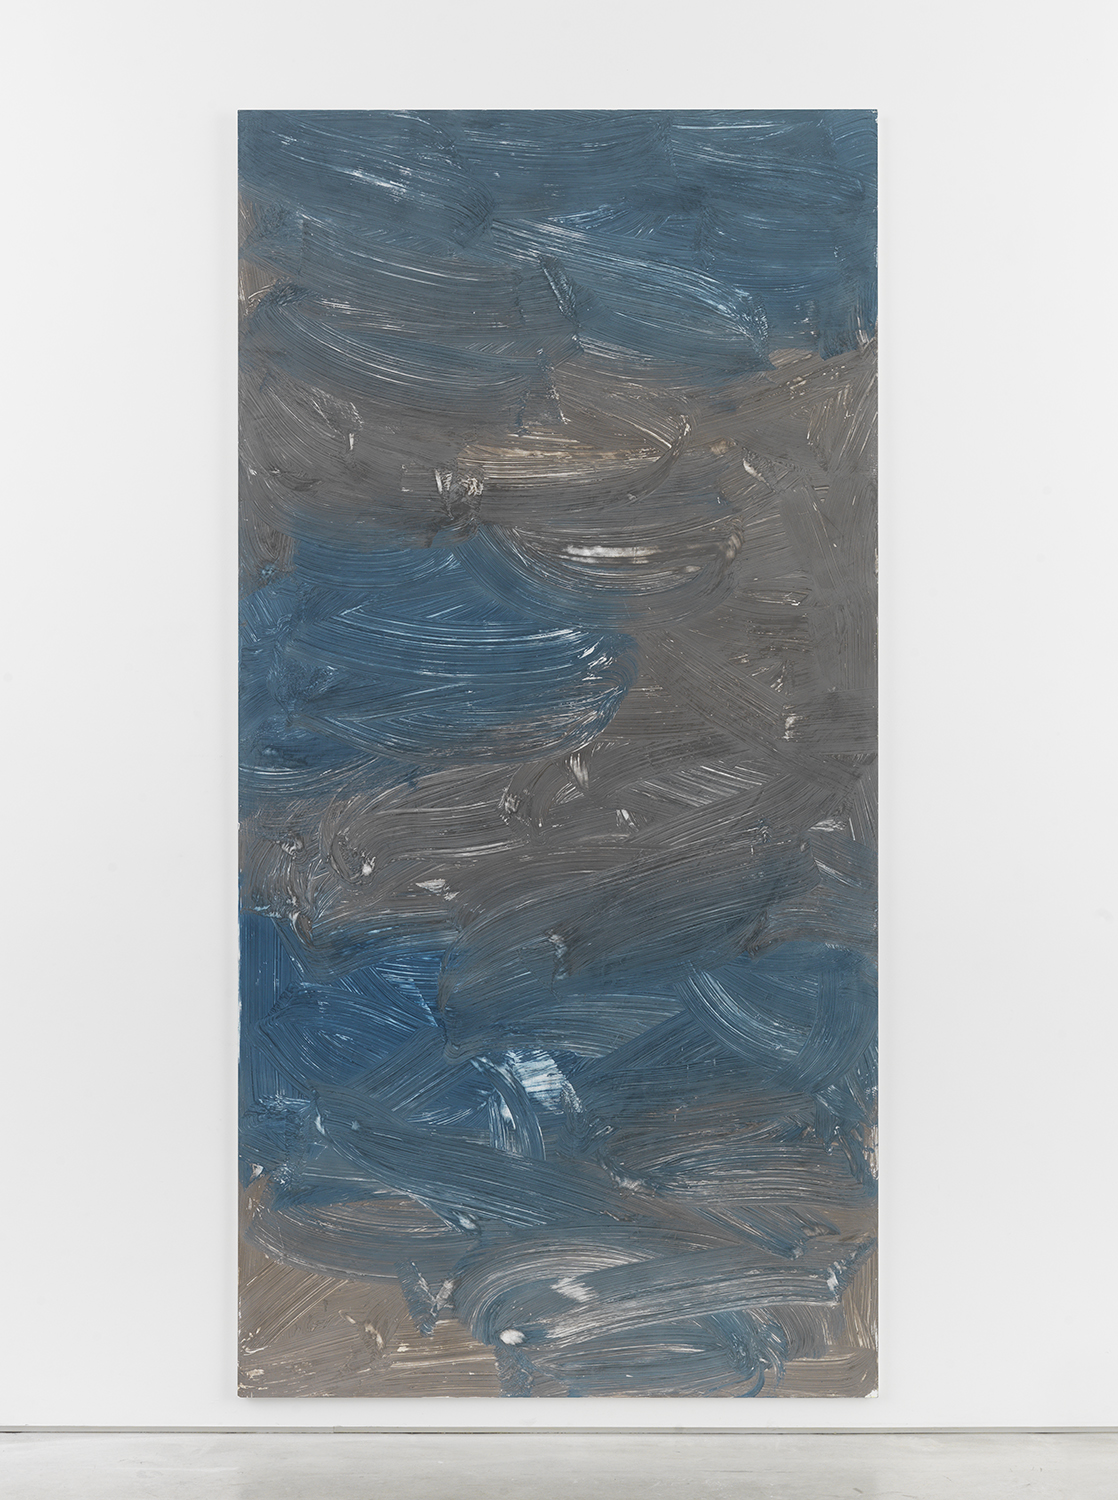 Alex Kwartler, Untitled, 2016, pigmented plaster on plywood, 96h x 48w in.